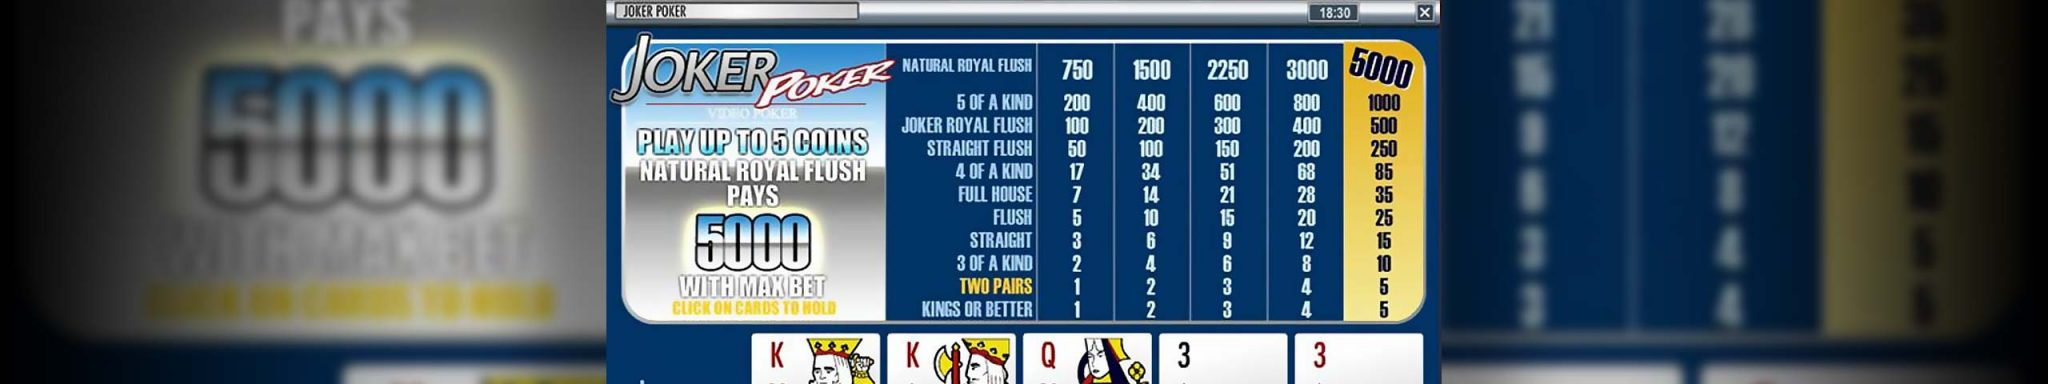 Video poker Joker Poker, Rival Slider - Himmelspill.com